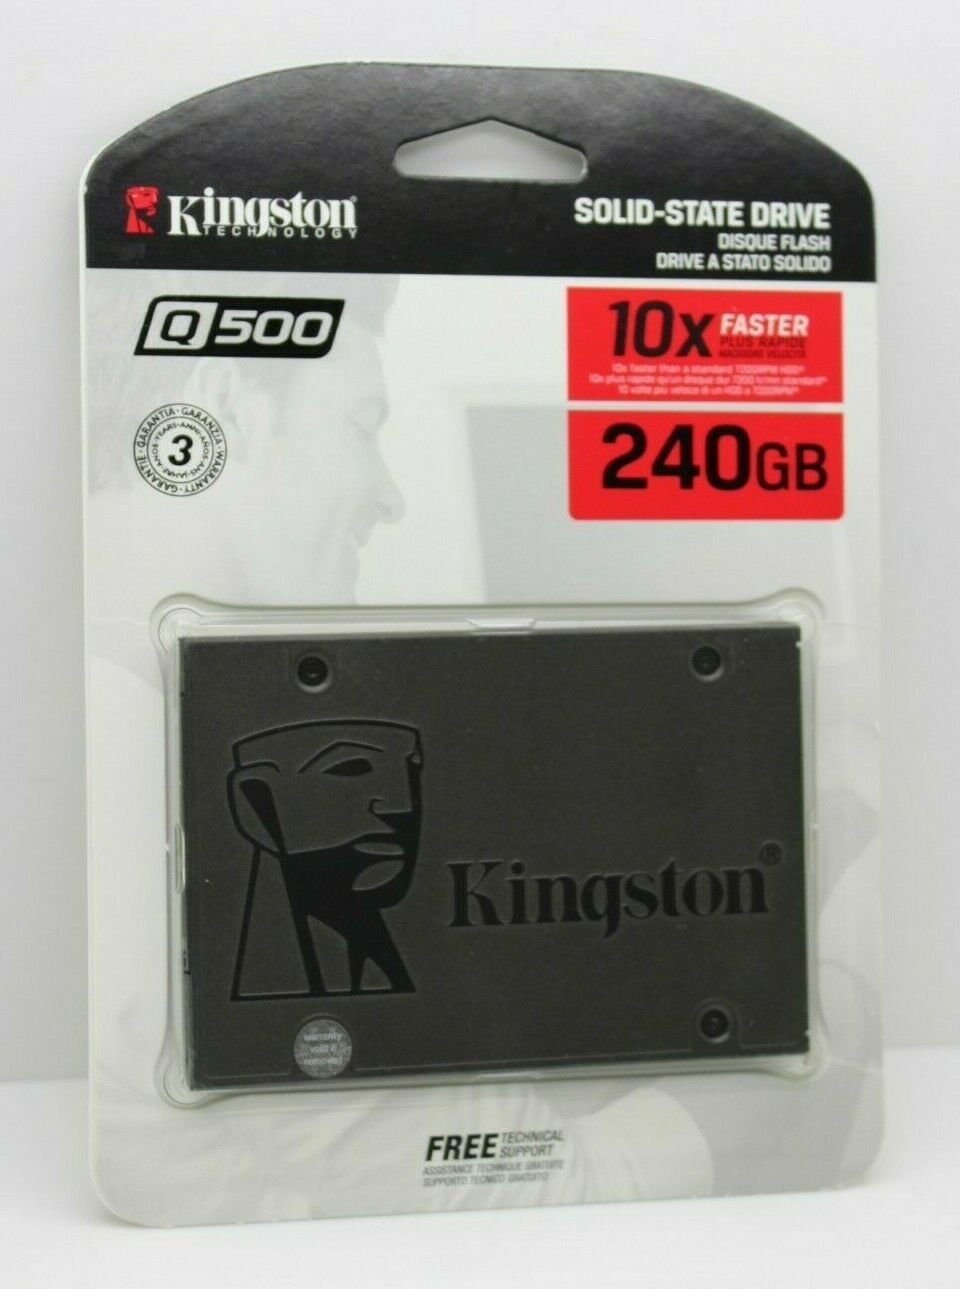 Kingston Q500 240GB SSD 2.5-inch Internal Solid State Drive. Buy it now for 31.99